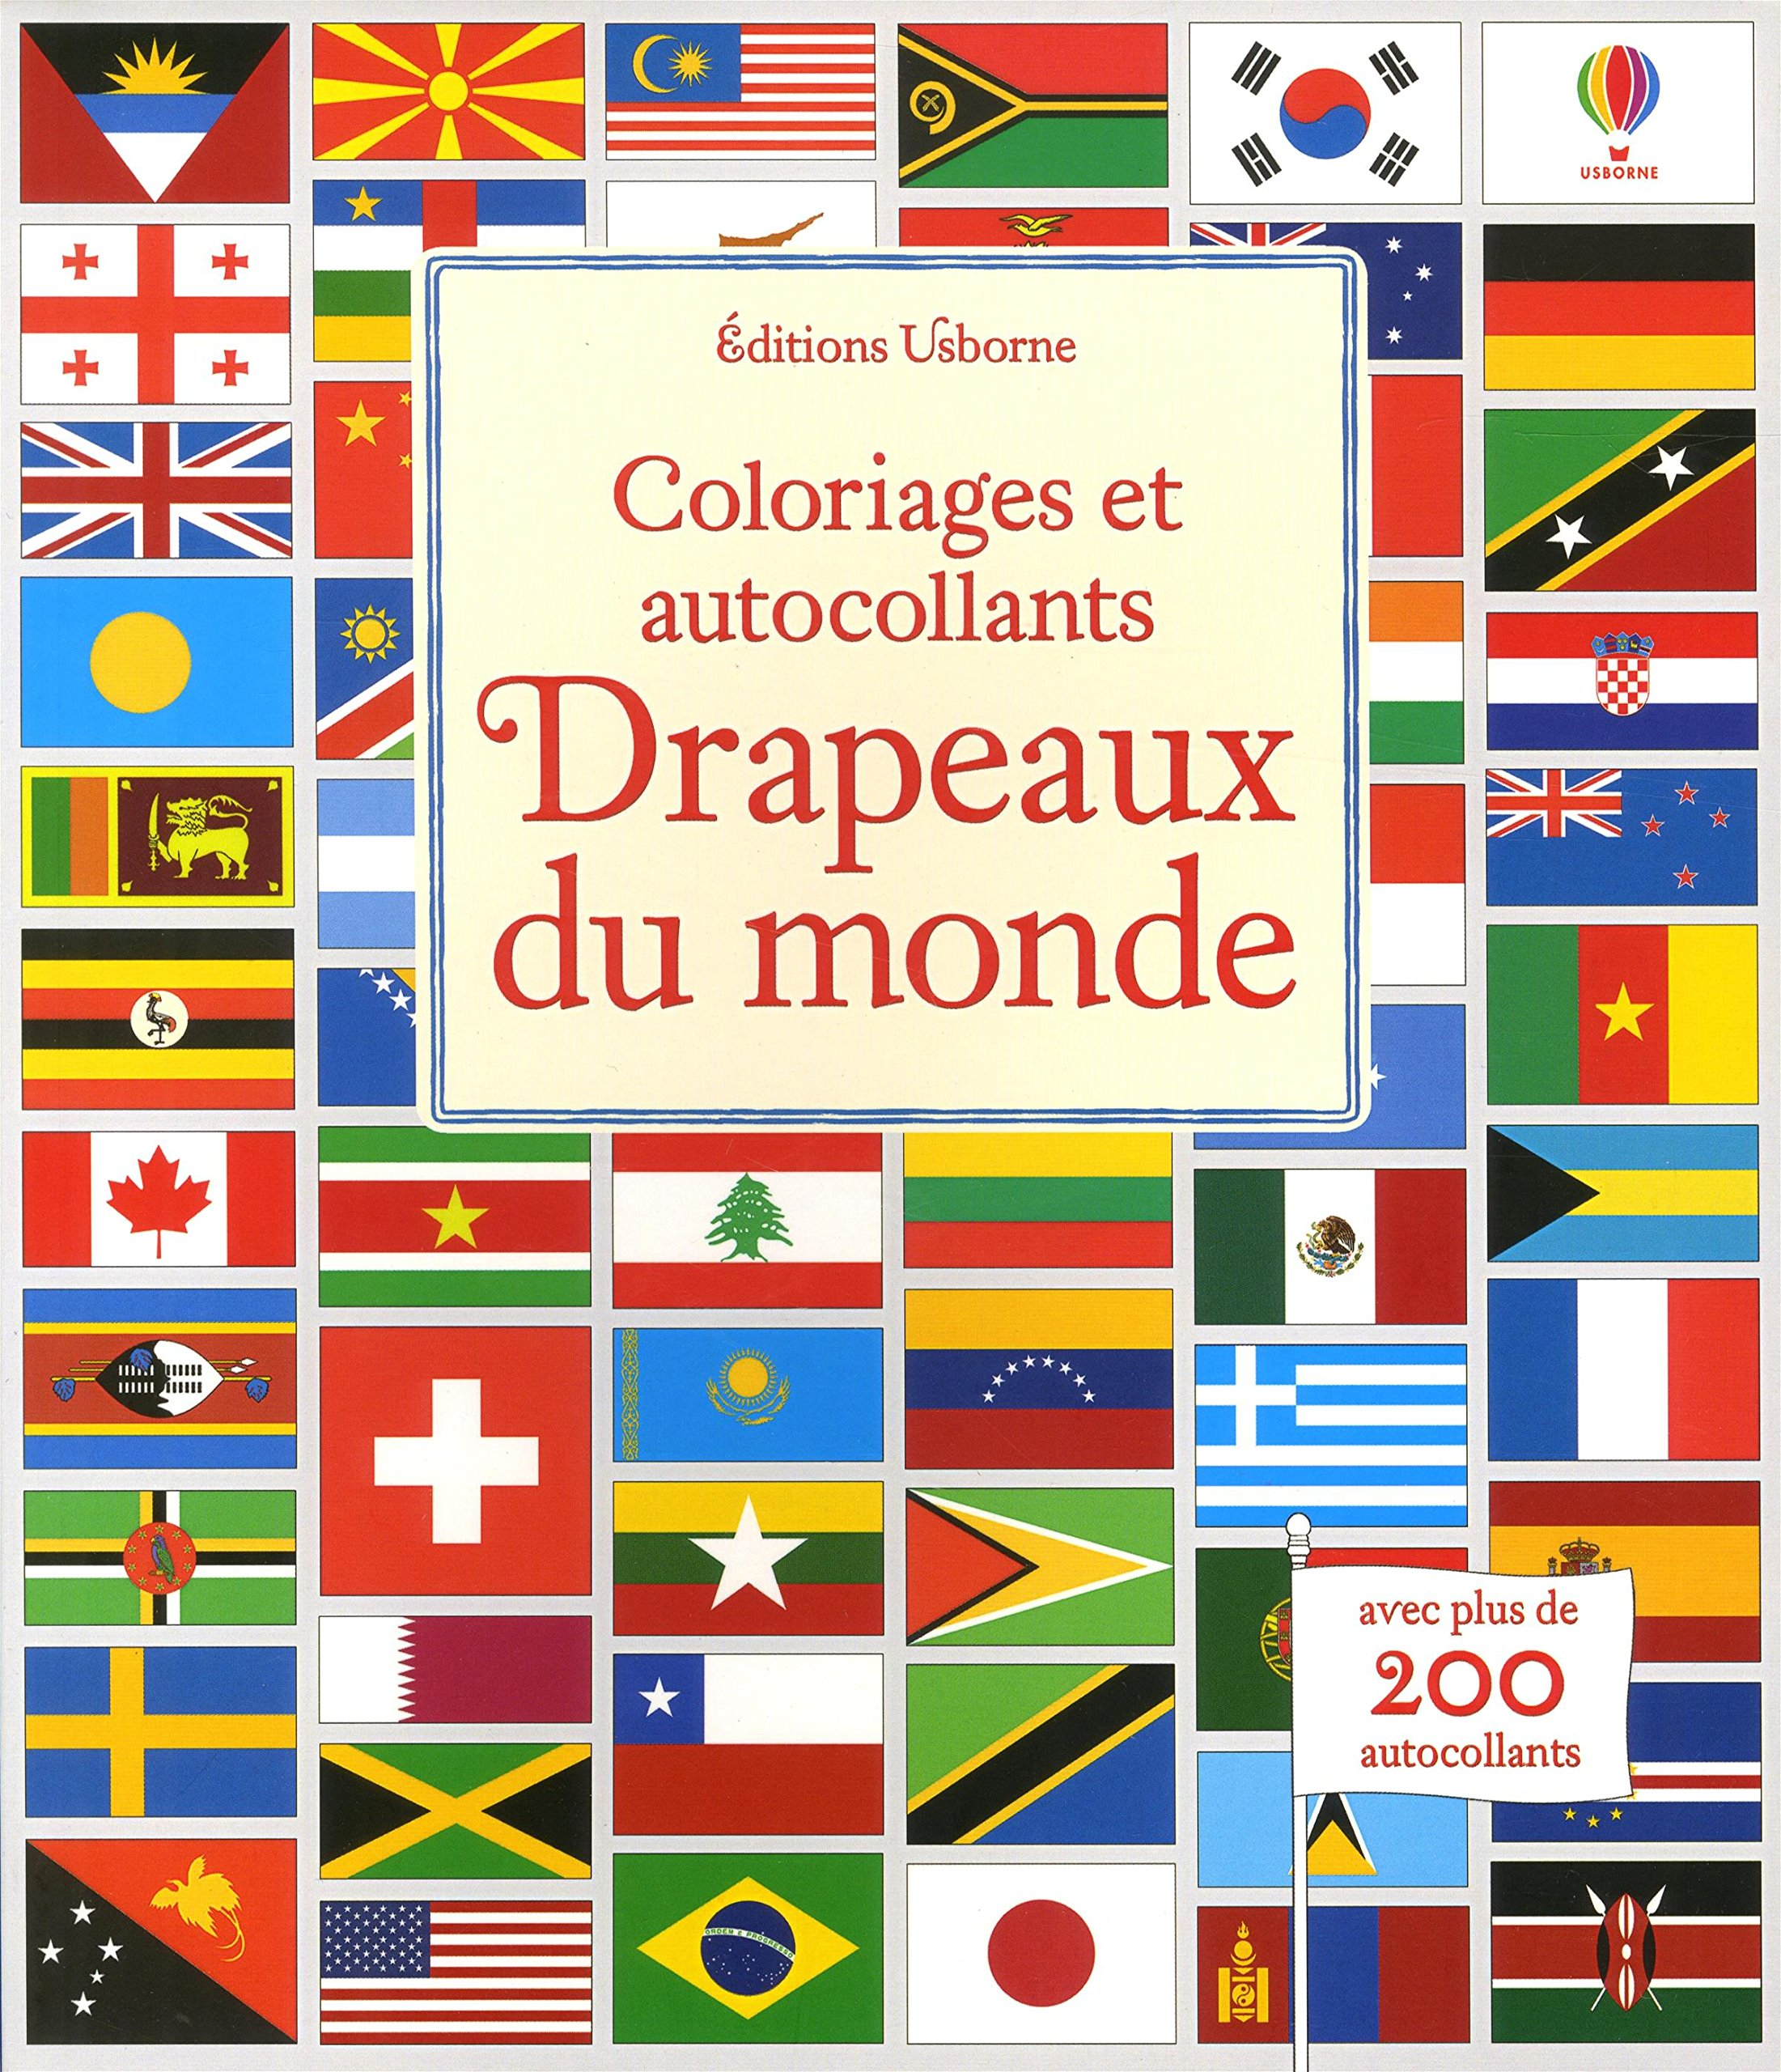 Drapeaux Du Monde Coloriages Et Autocollants Amazon Fr Meredith Susan Mcnee Ian Reynolds Hope Duran Veronique Livres